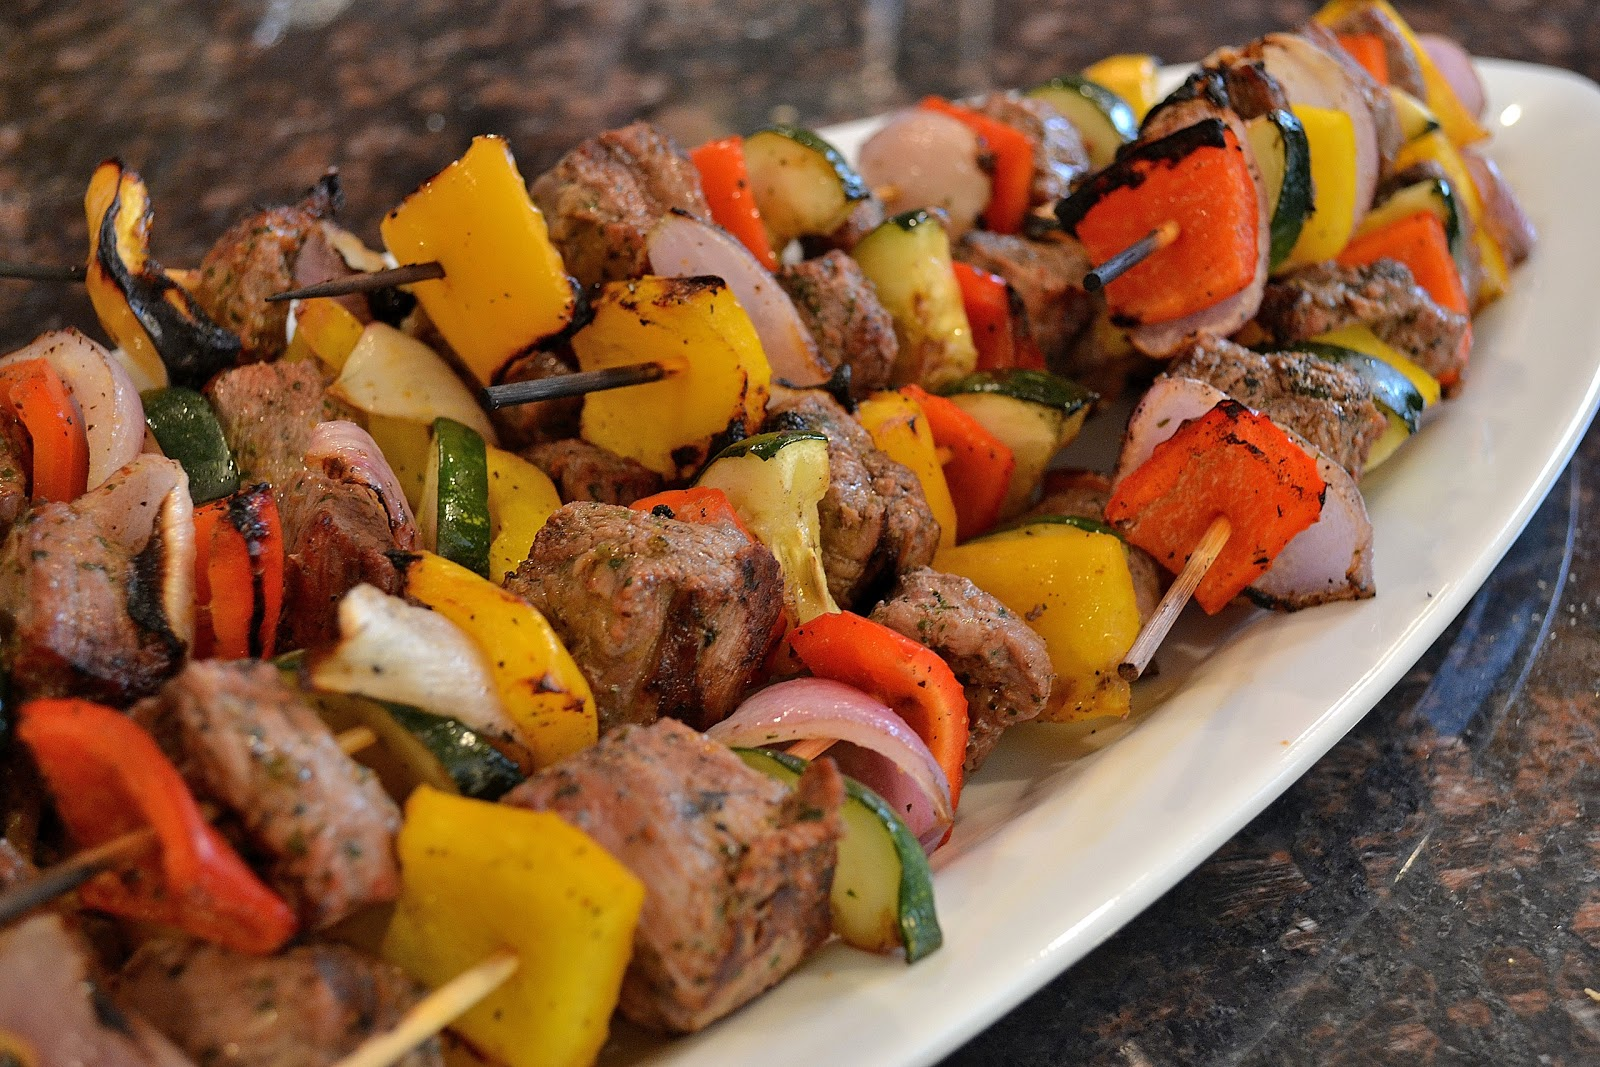 Type A Kitchen: Marinated Steak and Vegetable Kabobs